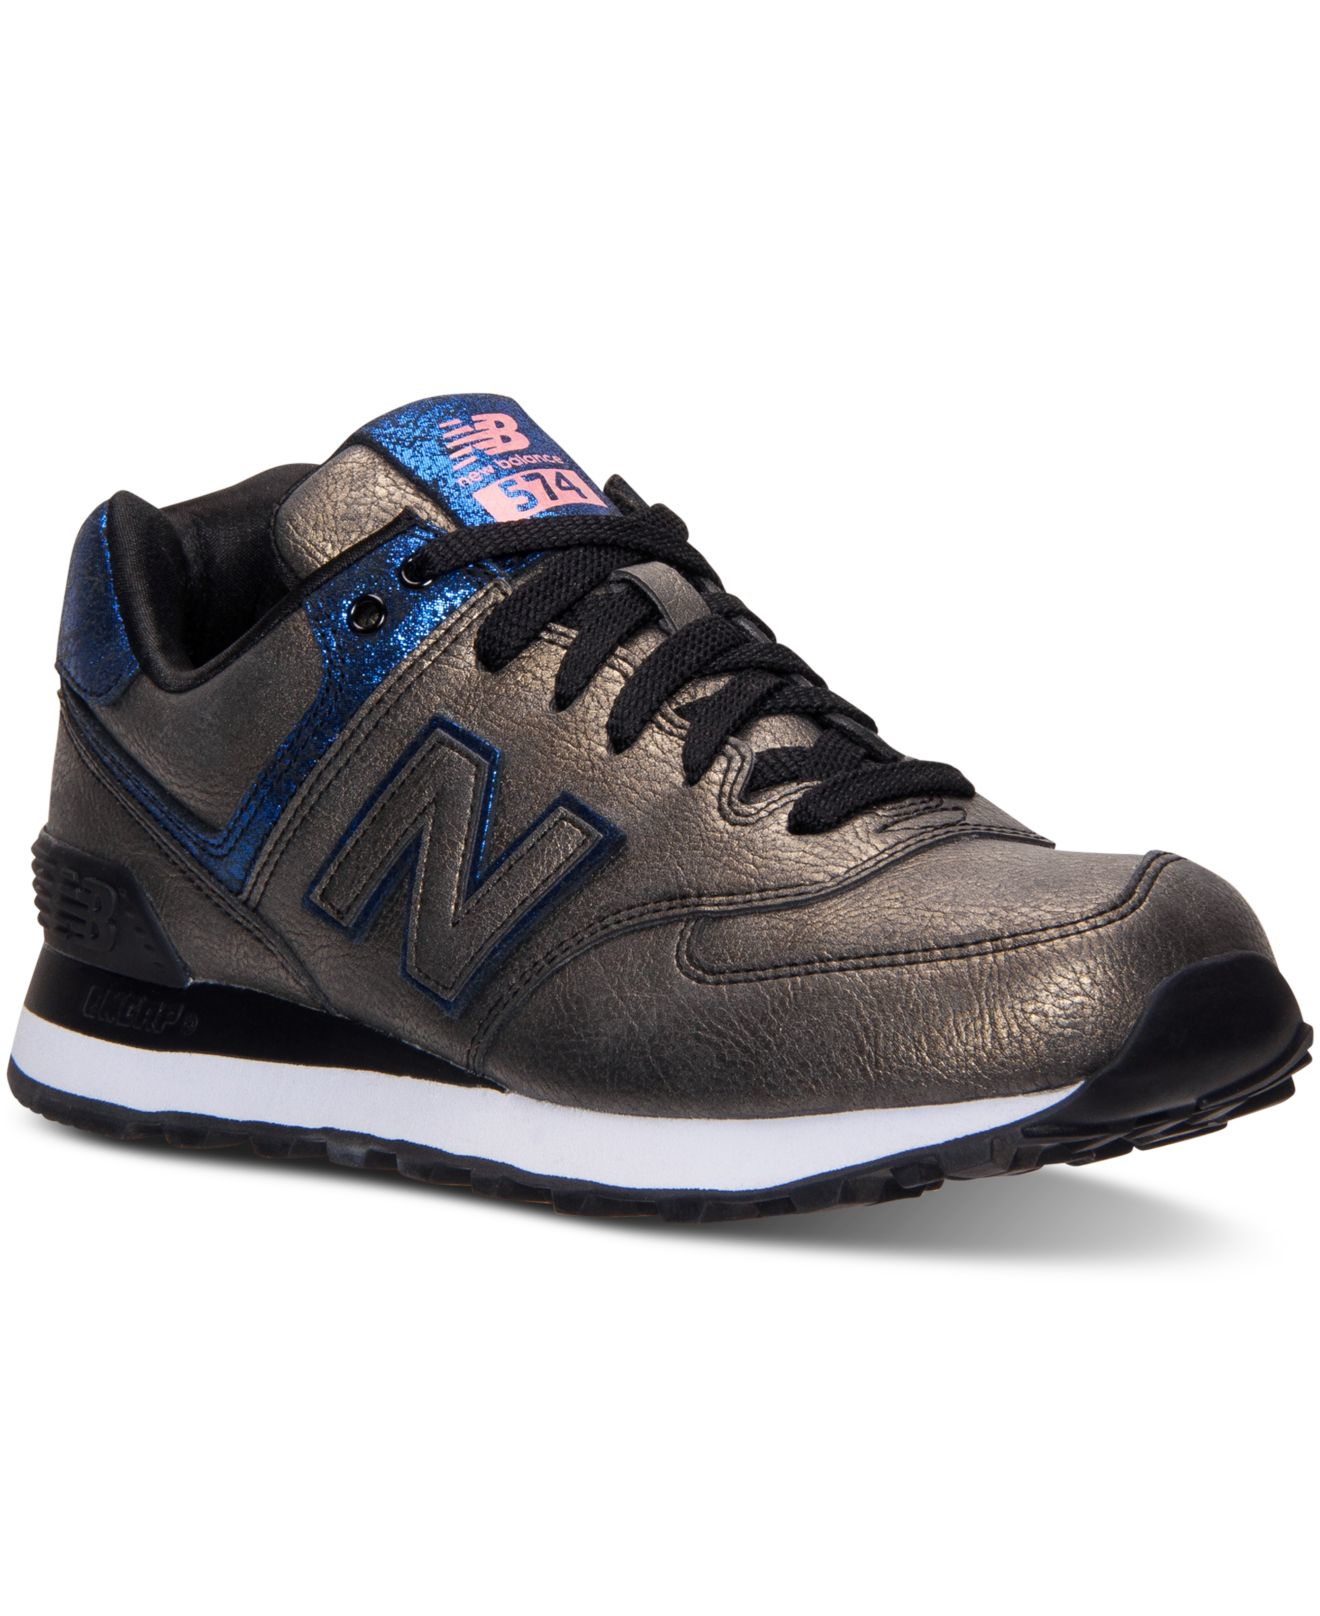 lyst new balance women 39 s 574 mineral glow casual sneakers from finish line in black. Black Bedroom Furniture Sets. Home Design Ideas